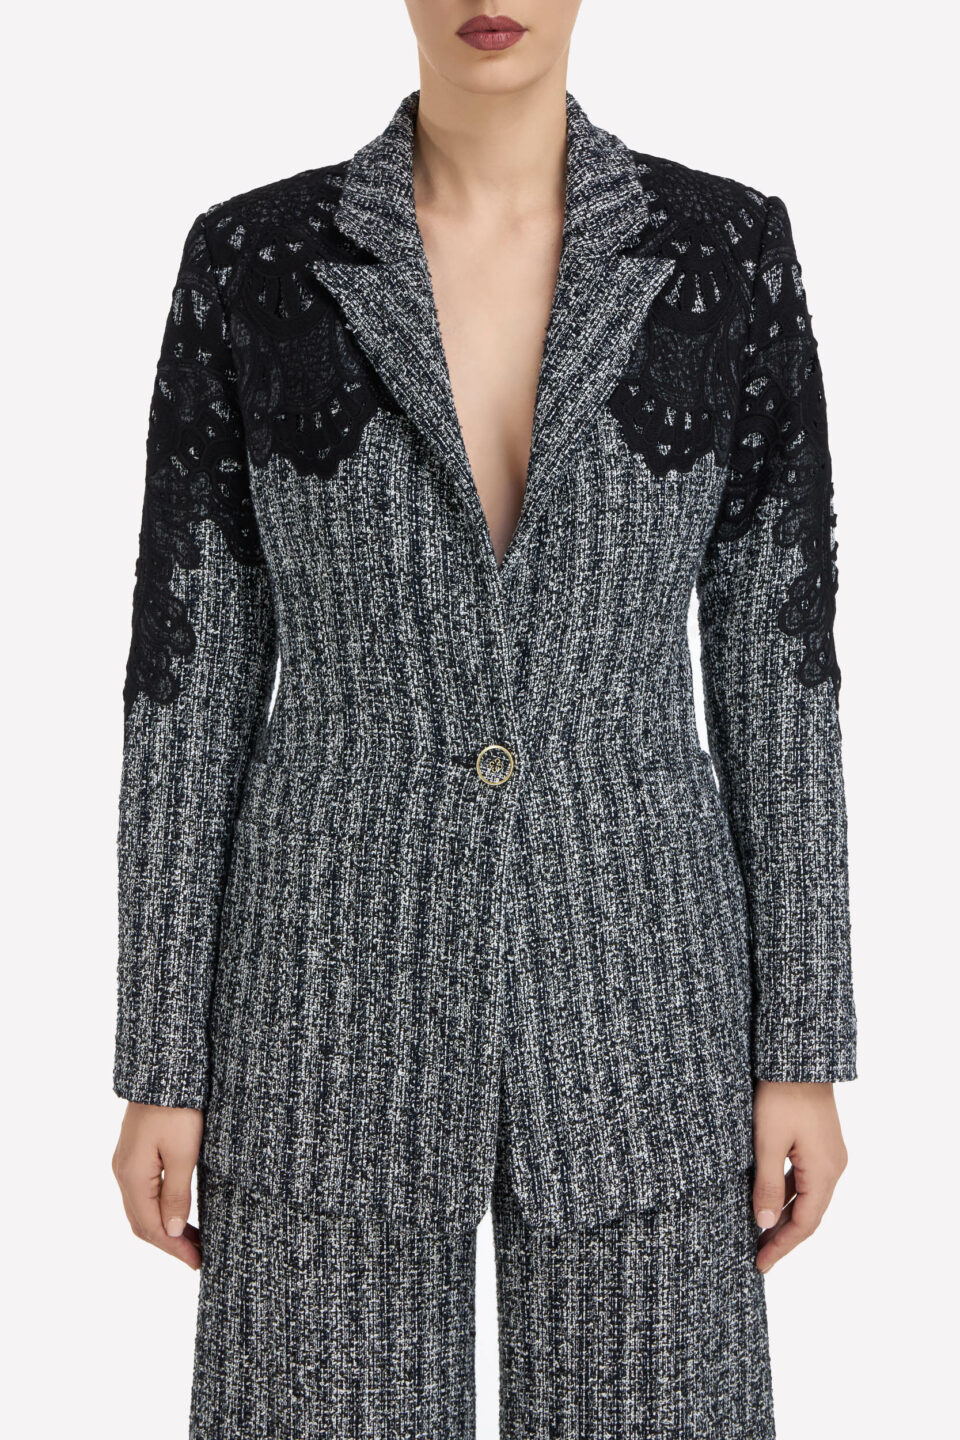 Addison FW2170 Grey Cotton-Blend Tweed Blazer with Embroidered Lace Applique & Notch Lapel